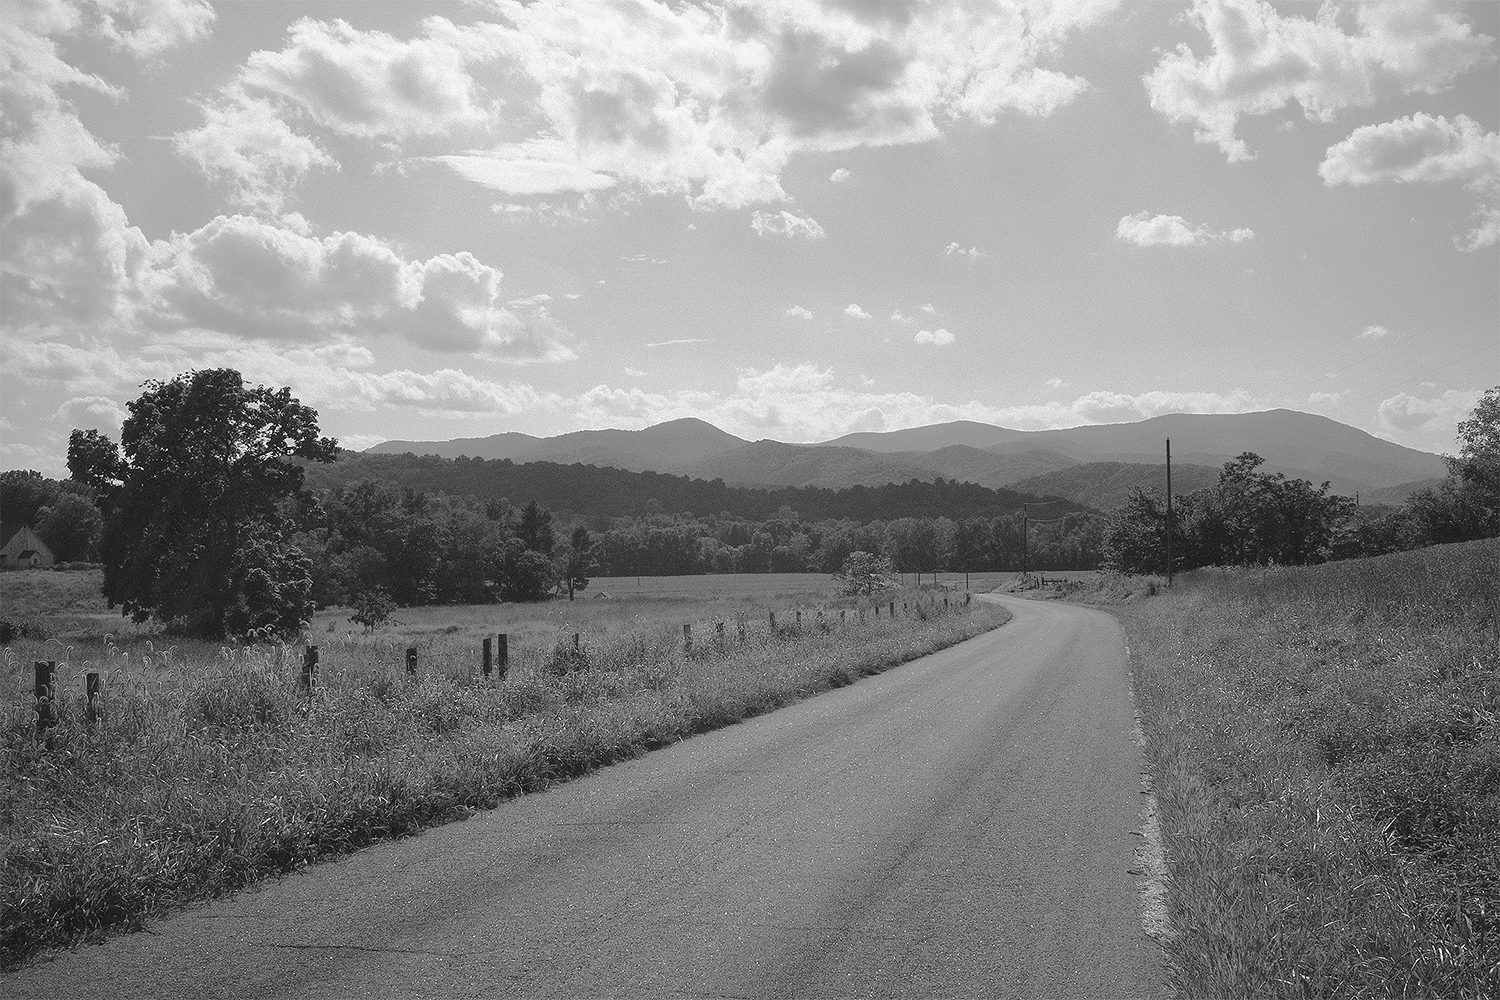 Looking west from Fletchers Mill.  Rappahannock County, Virginia.  2014.